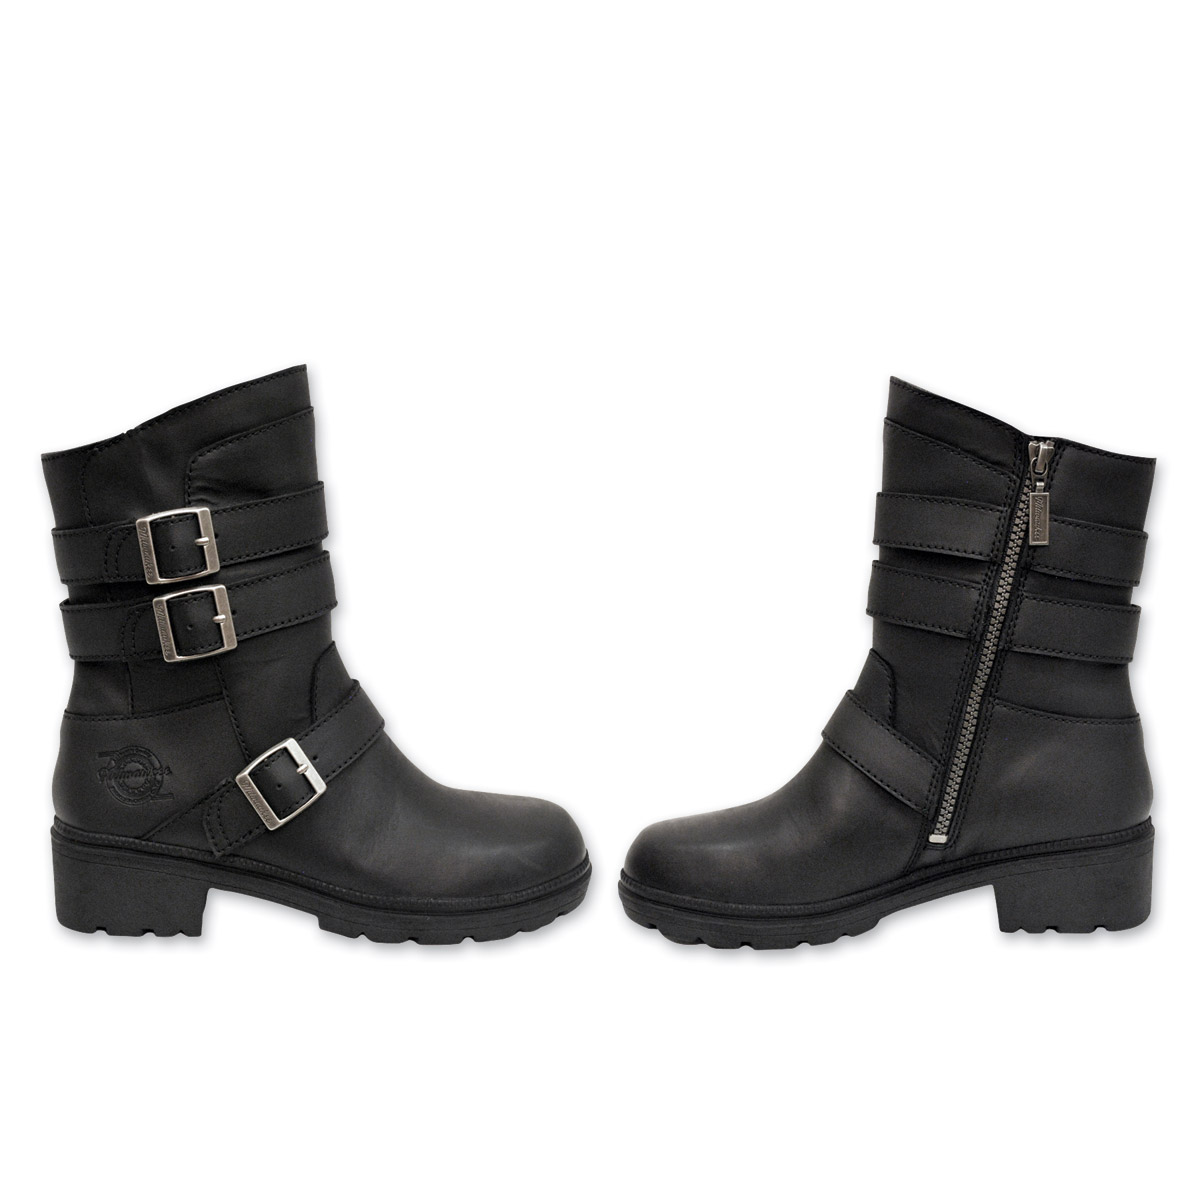 Milwaukee Motorcycle Clothing Co. Women's Cameo Black Leather Boots